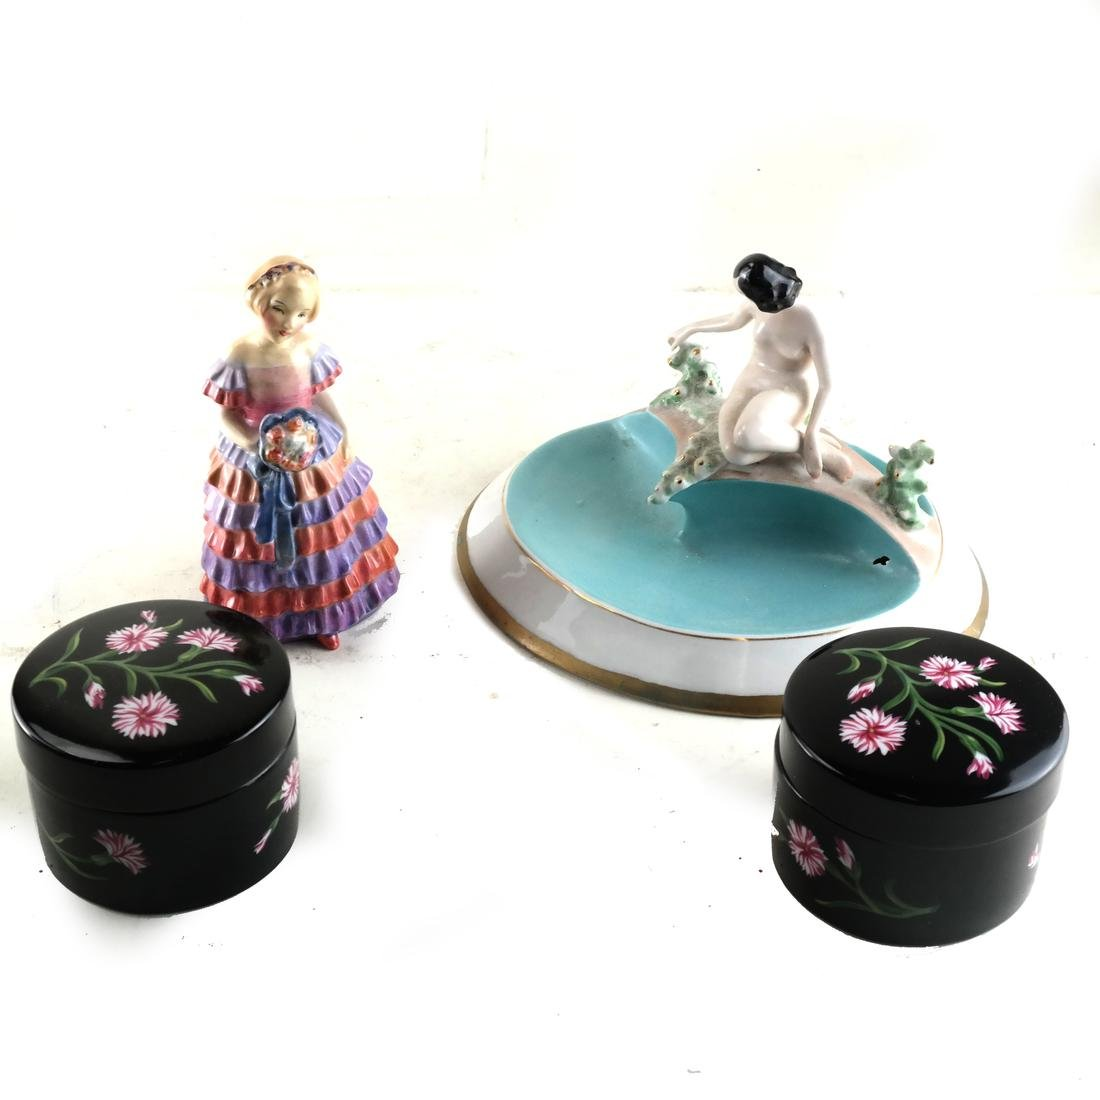 Tiffany & Co., Royal Doulton, and Another